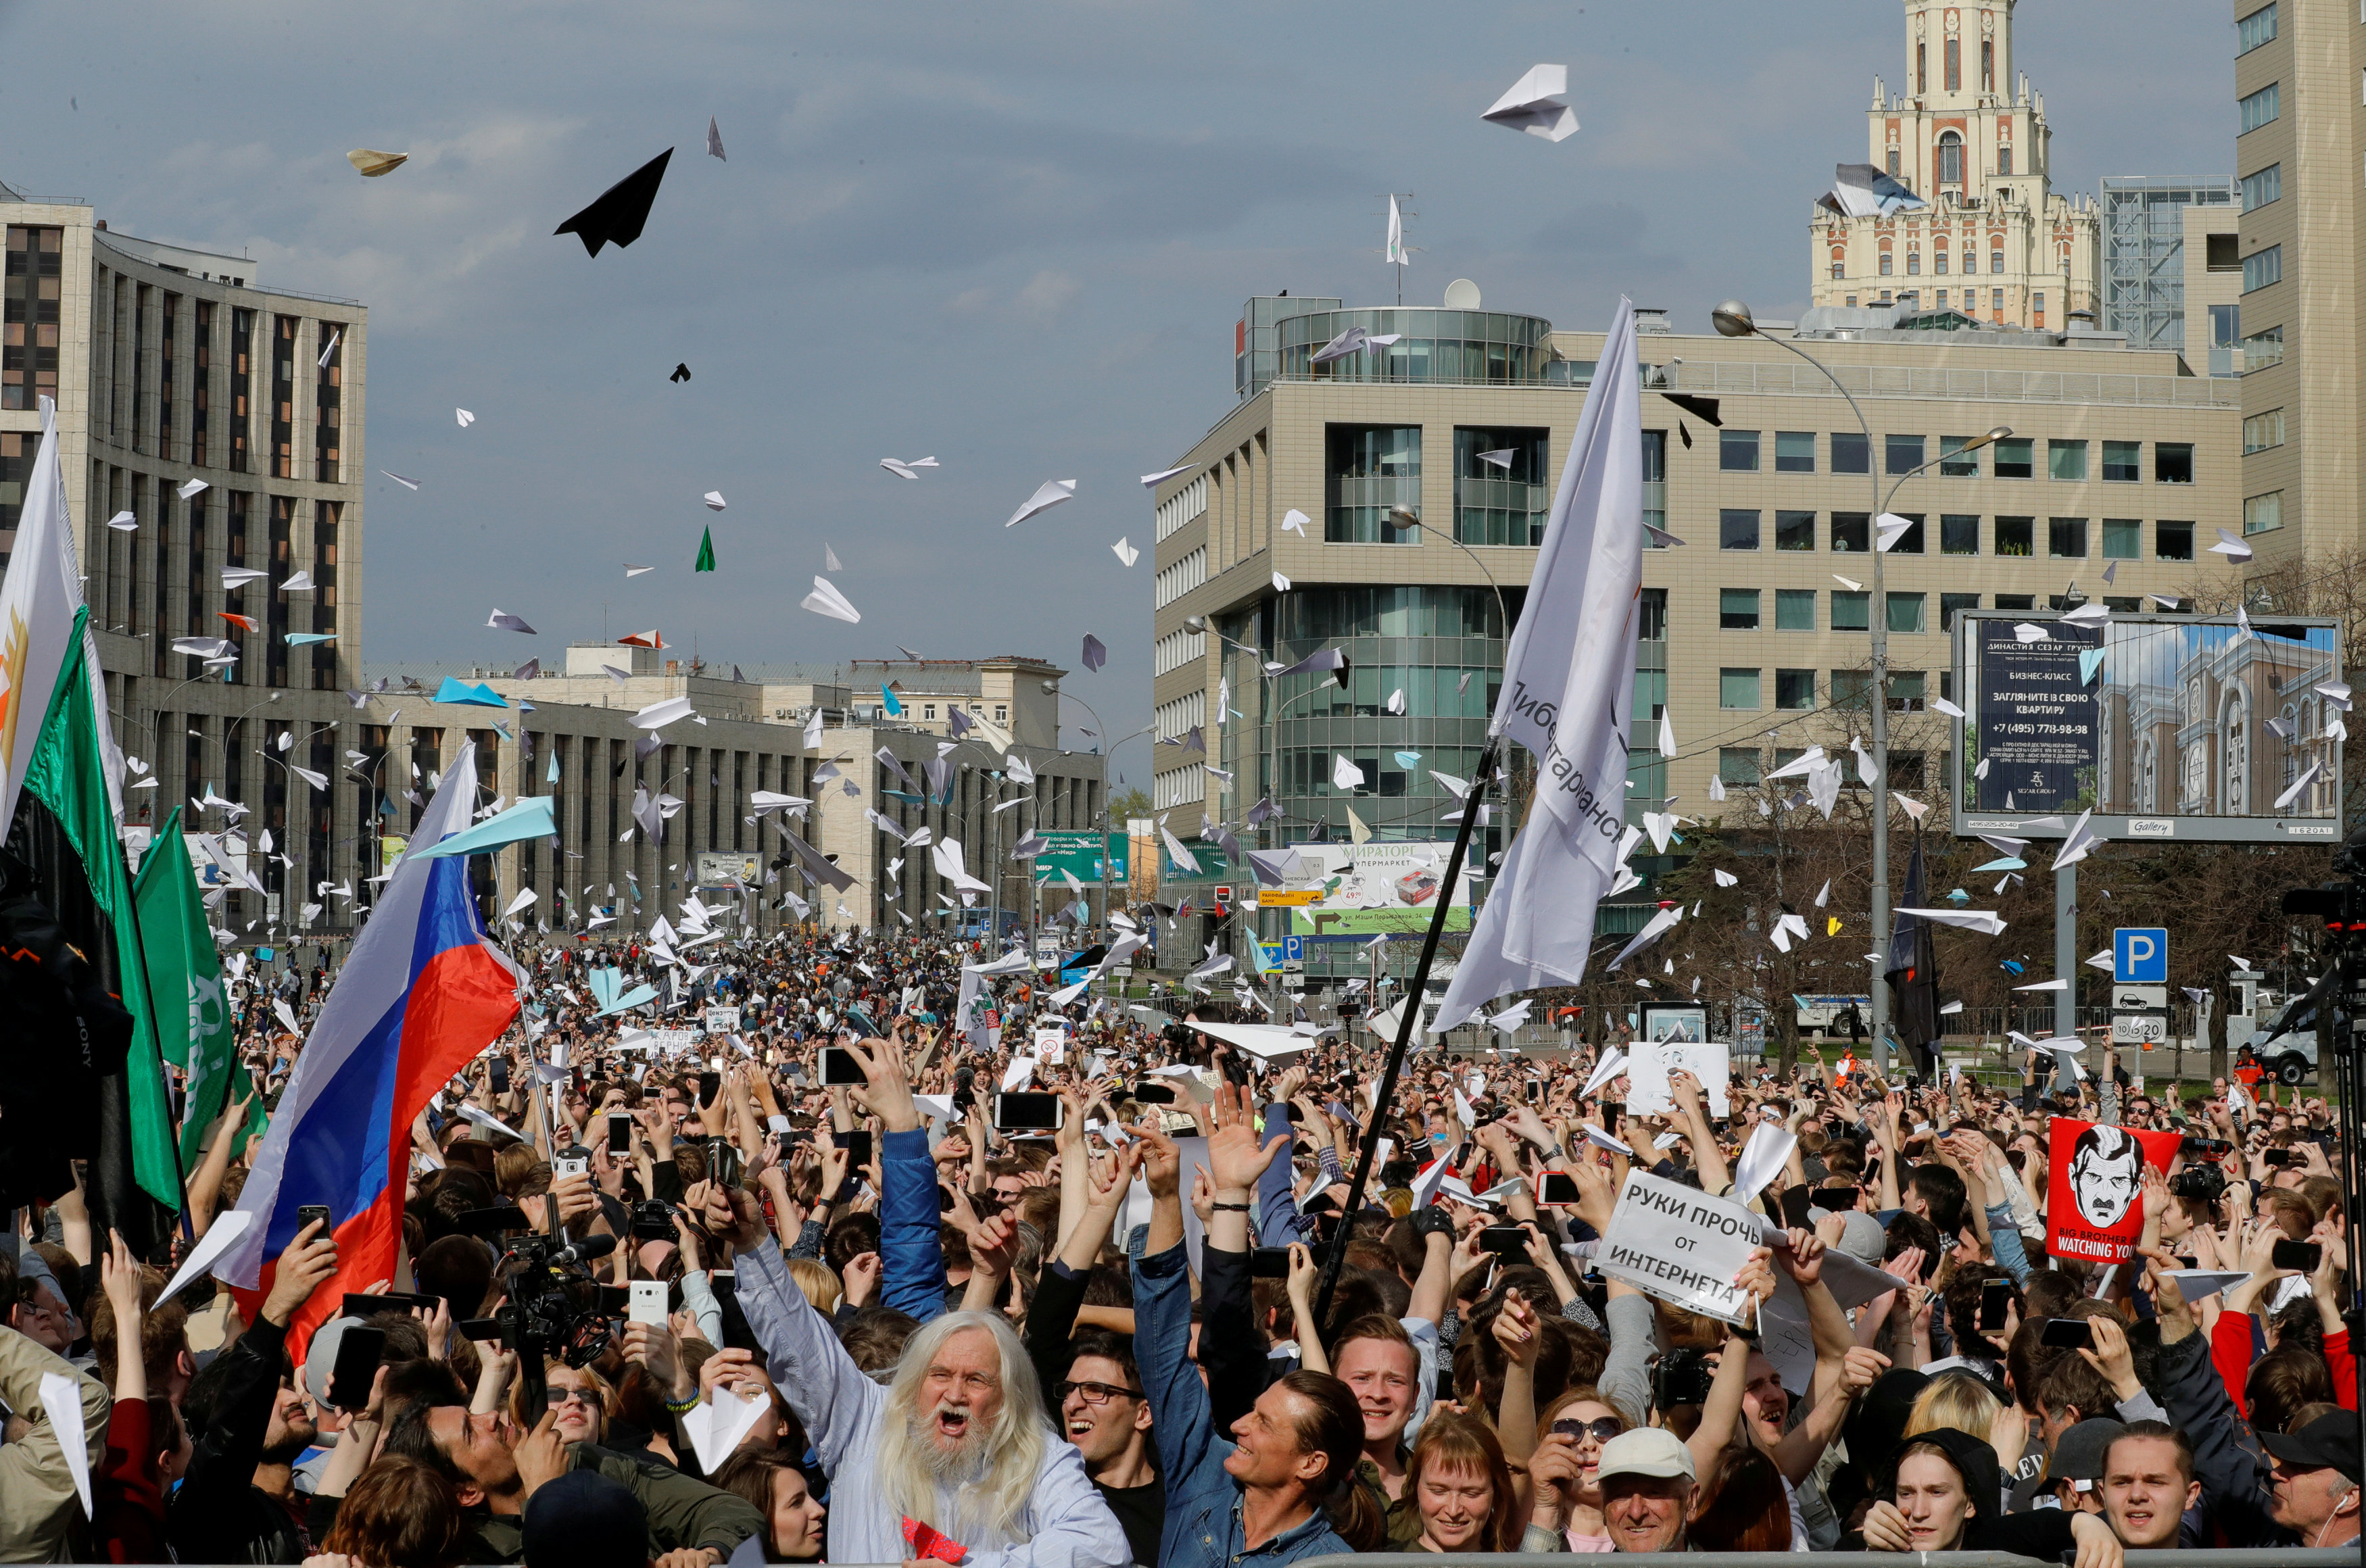 People release paper planes, symbol of the Telegram messenger, during a rally in protest against court decision to block the messenger because it violated Russian regulations, in Moscow